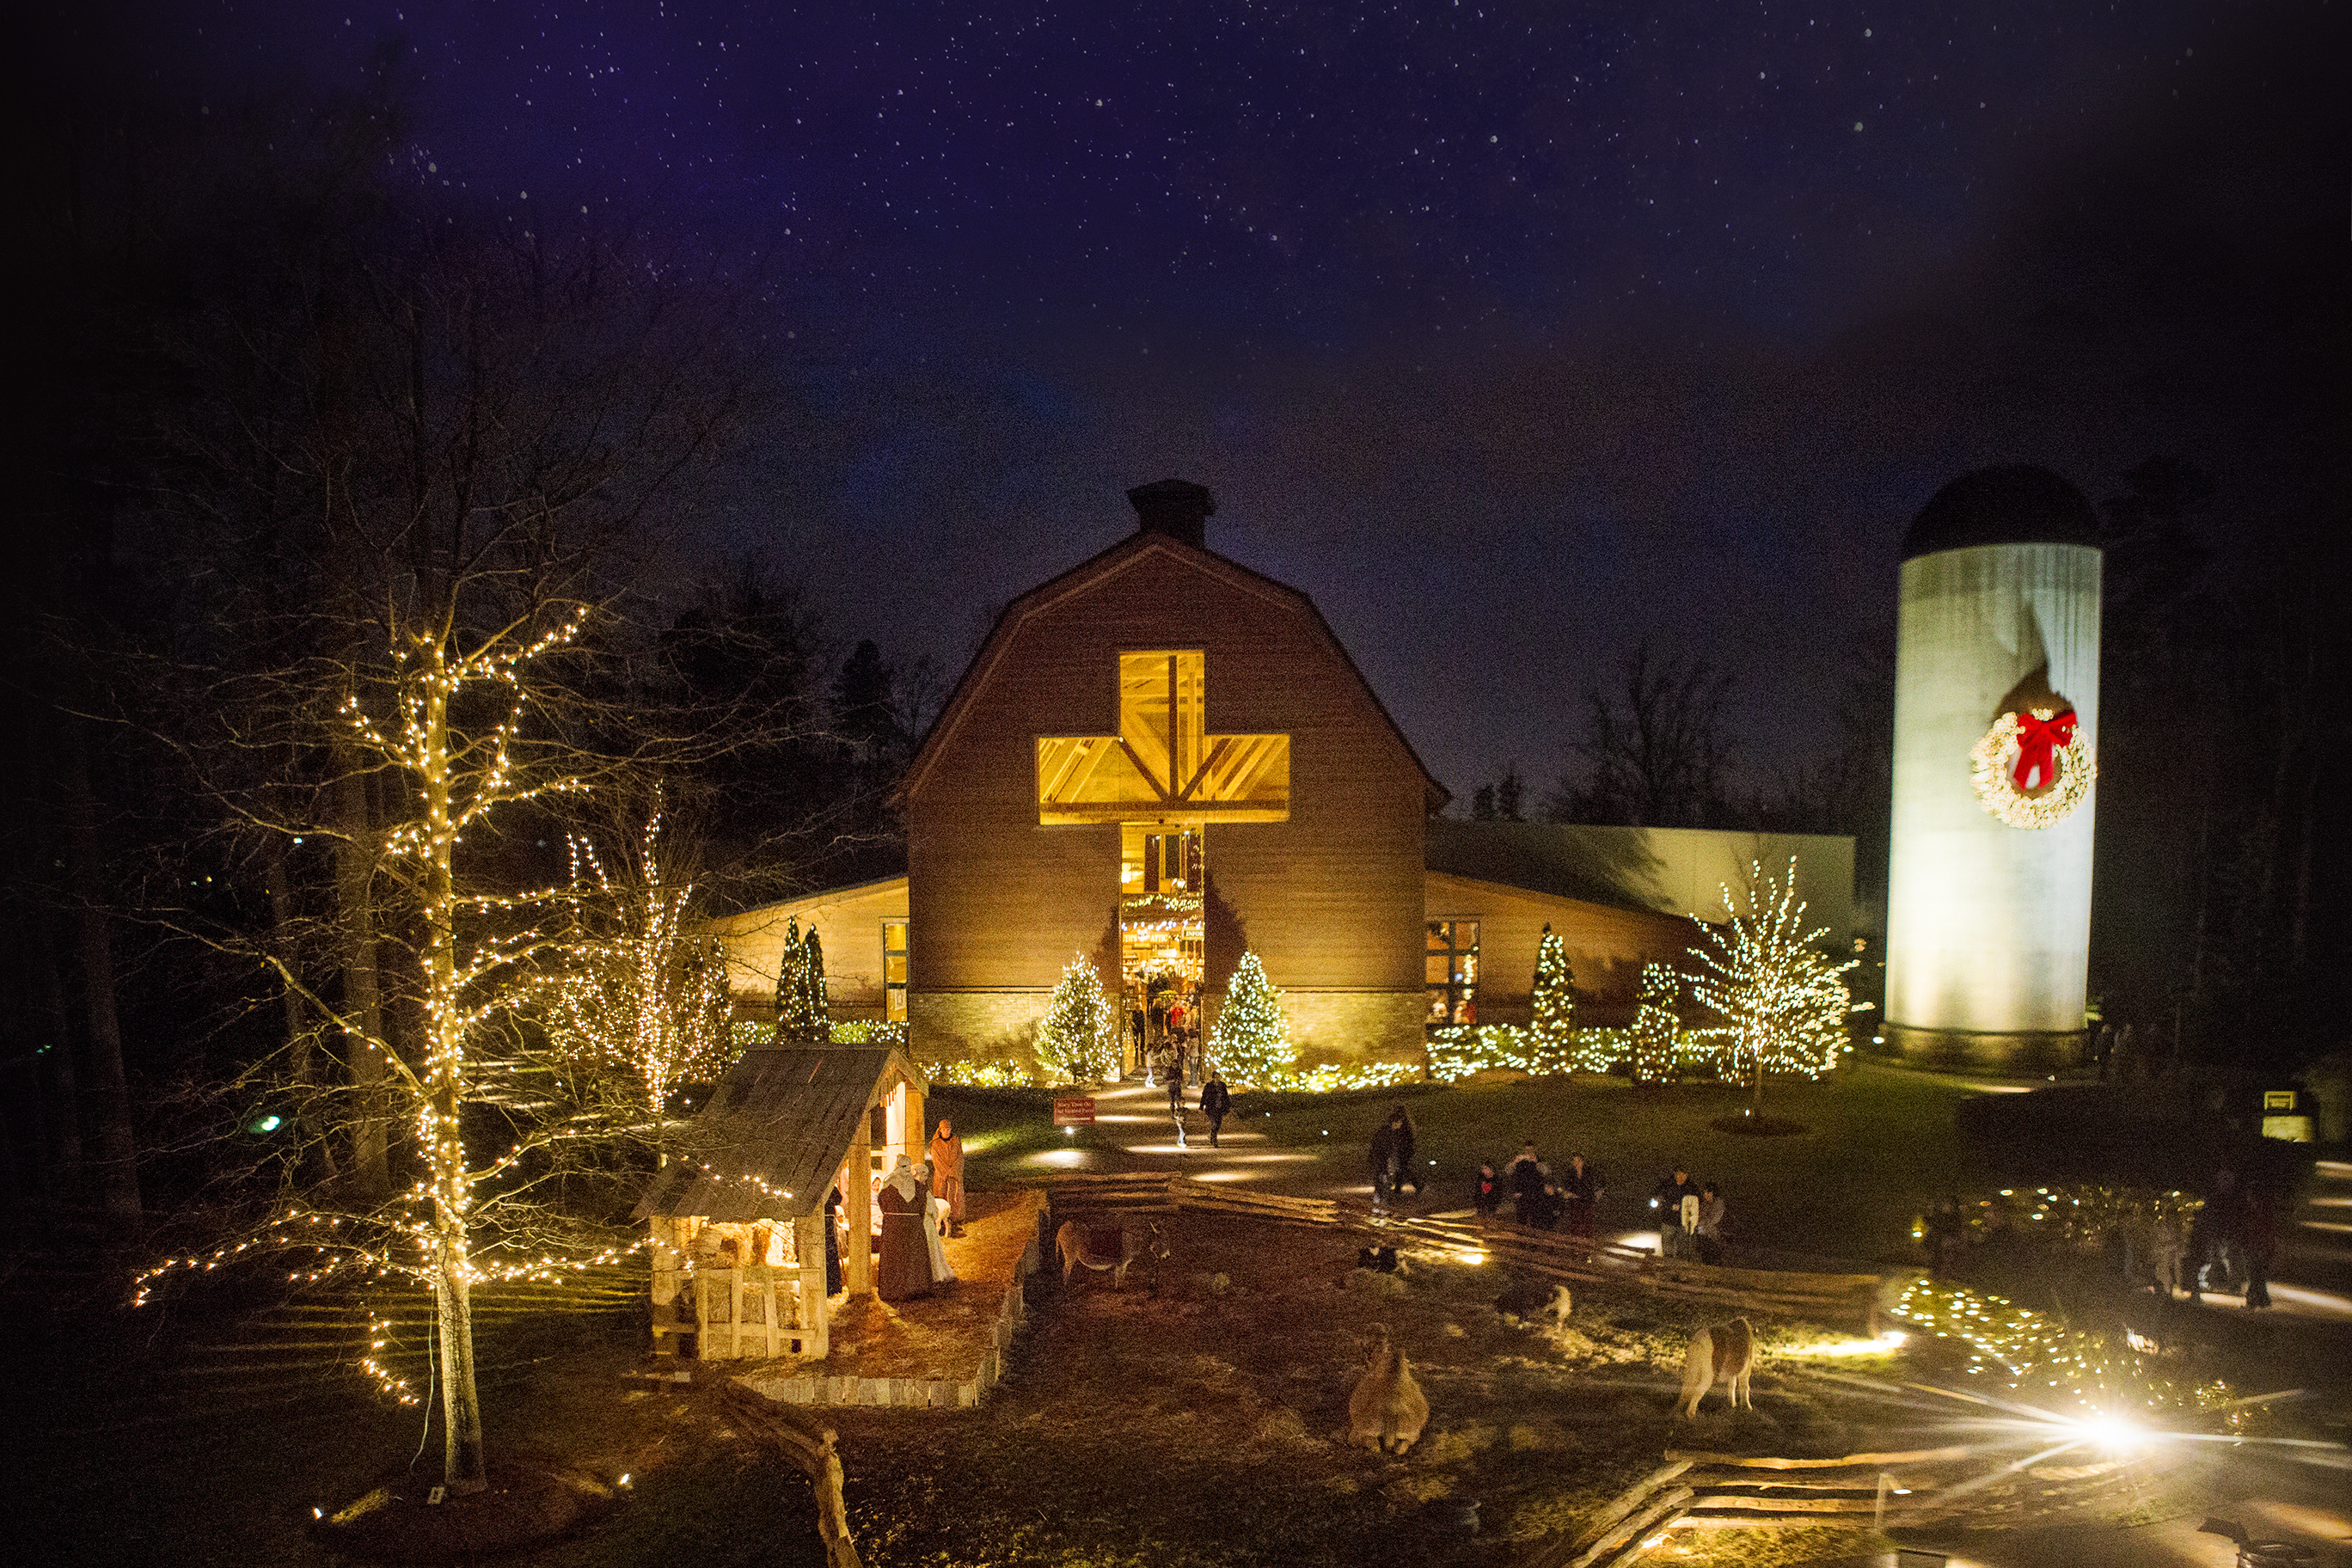 billy graham library hosts annual christmas celebration dec 1 23 the billy graham library blog